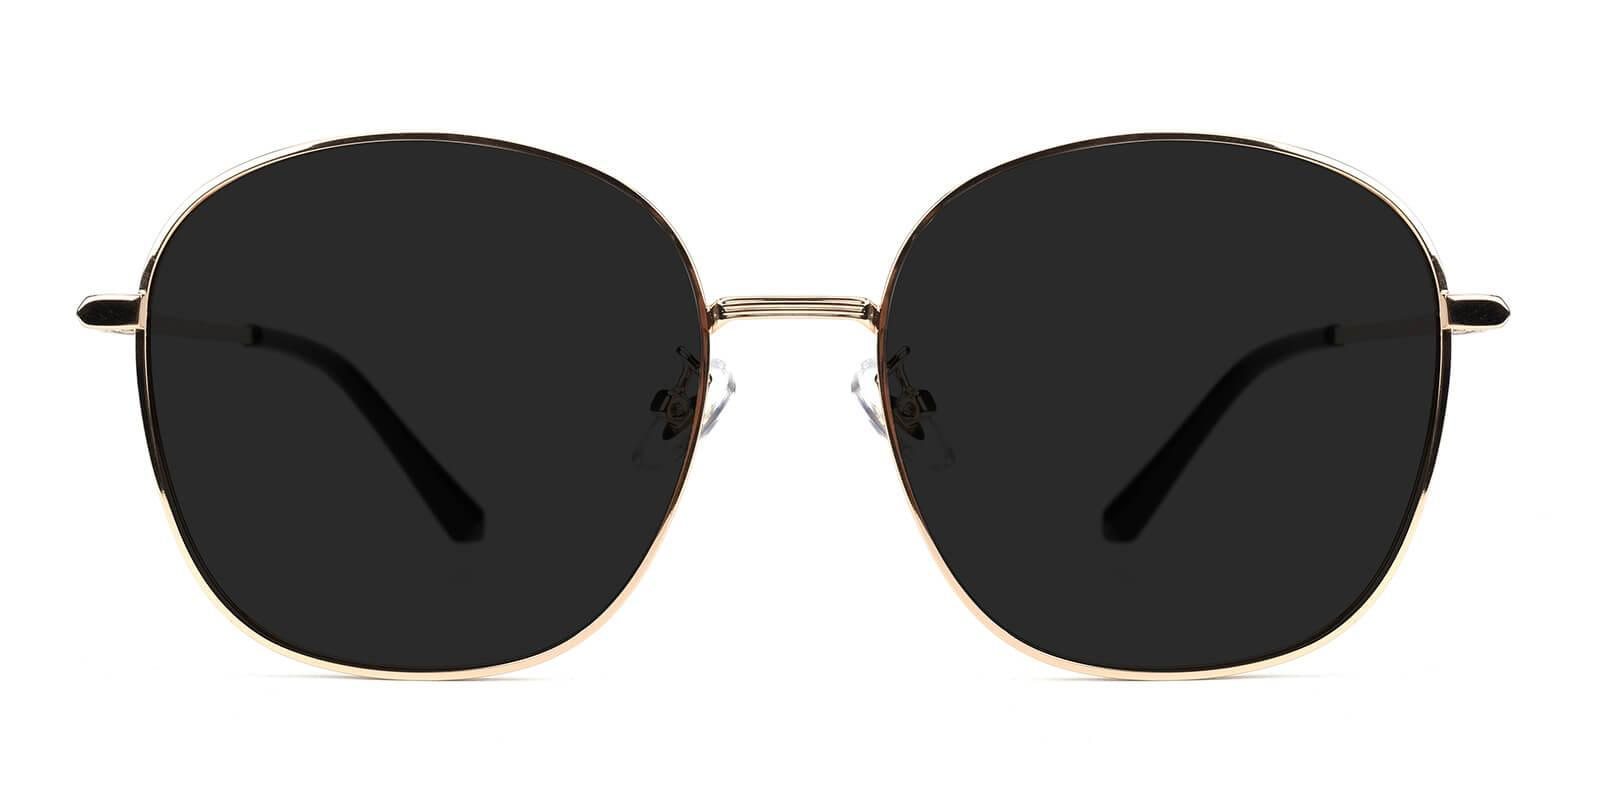 Sequence Black Metal NosePads , SpringHinges , Sunglasses Frames from ABBE Glasses